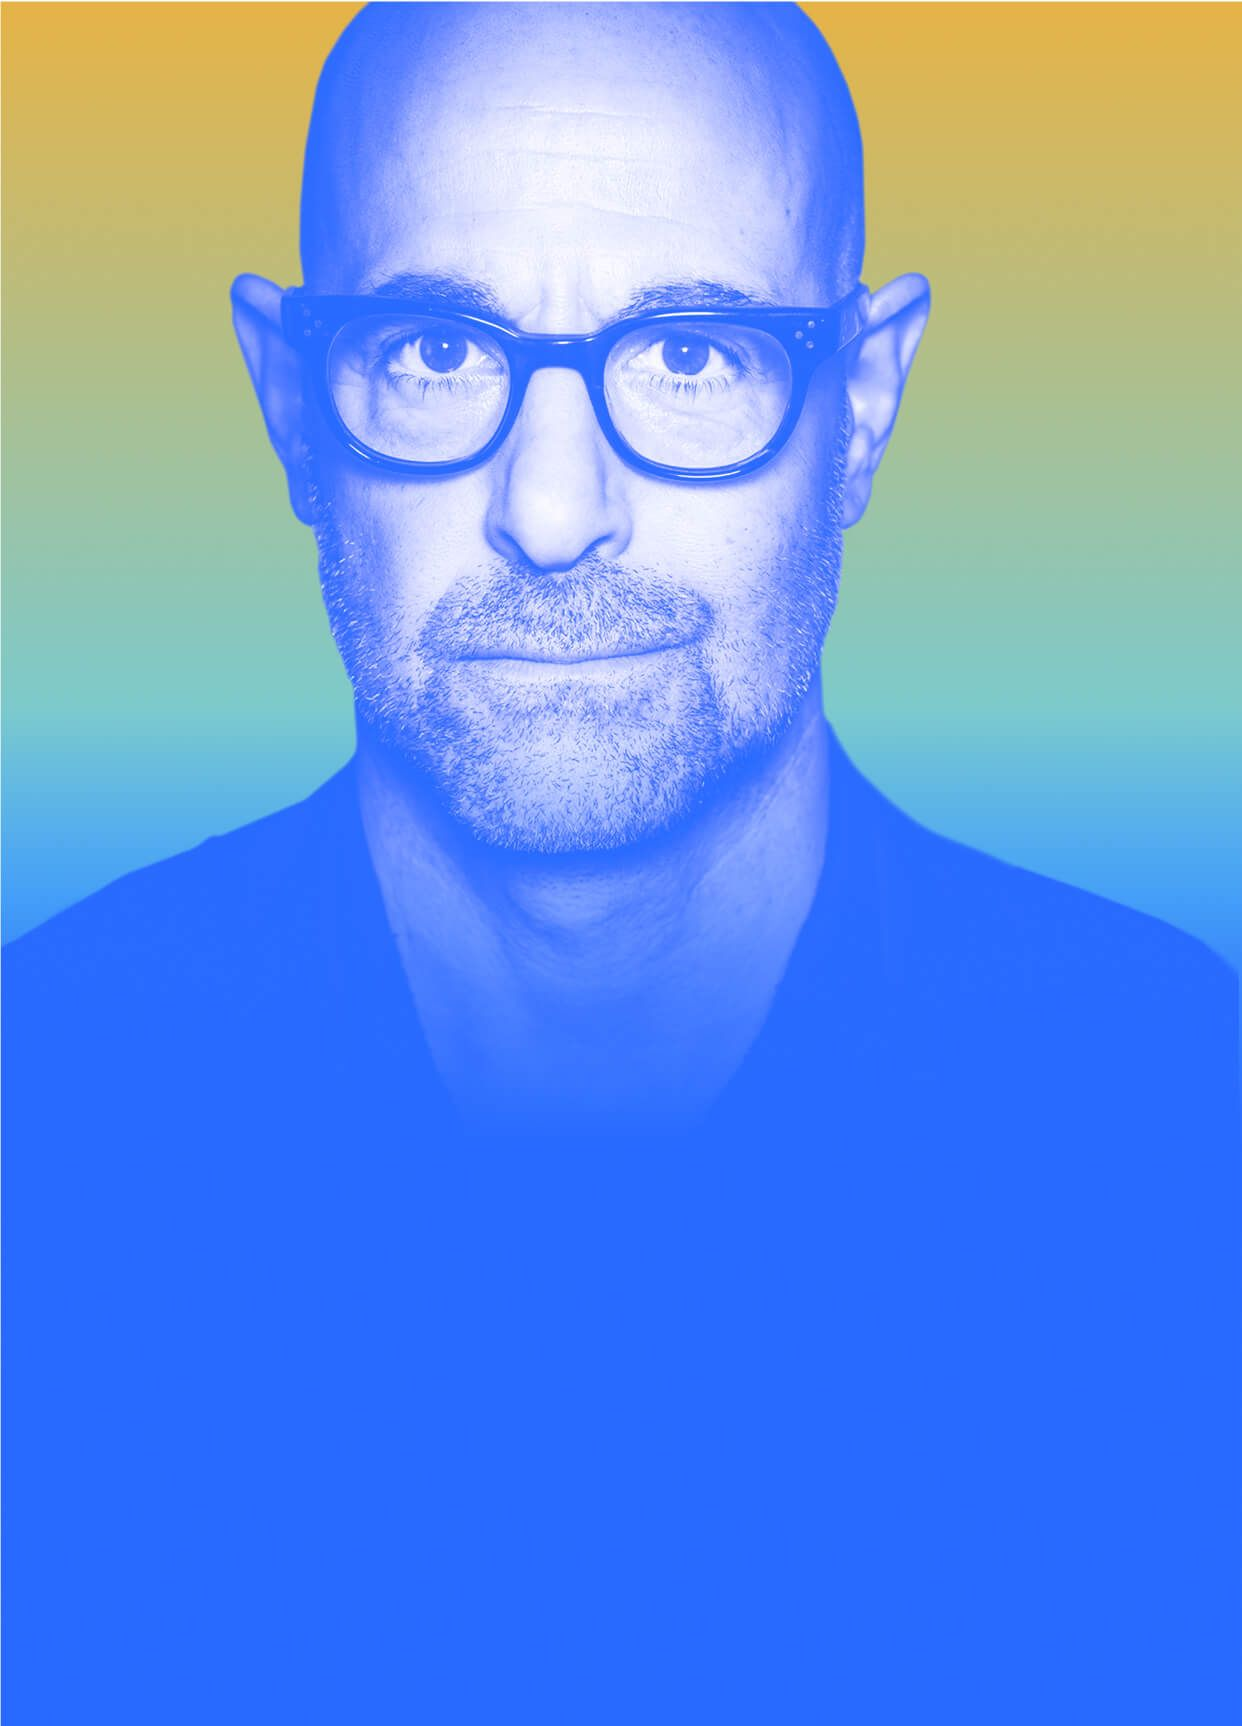 Stanley Tucci on Taste, life's journeys, and wooing through food.